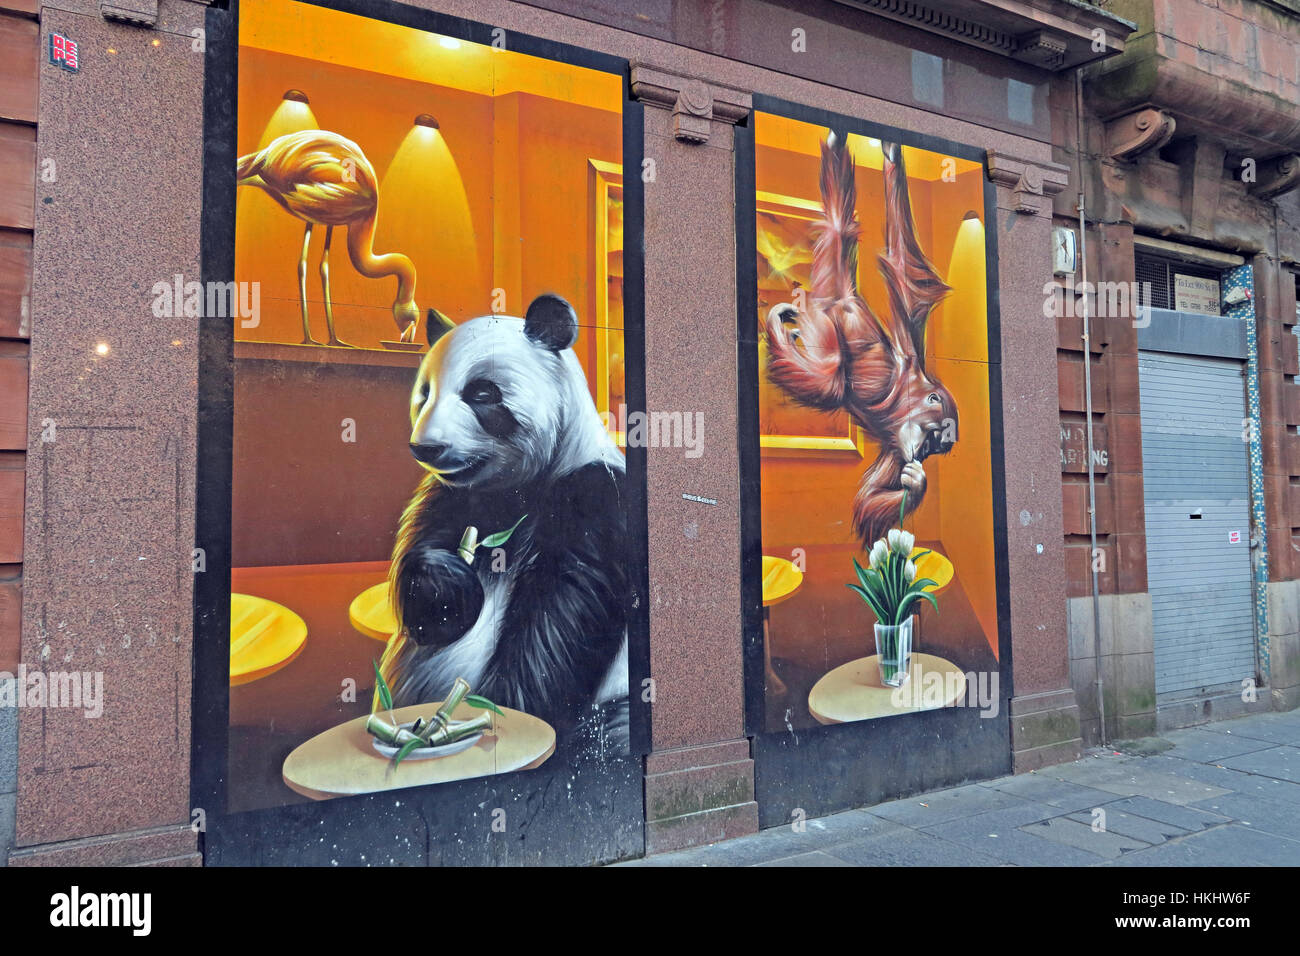 Panda drawn on shop front, Glasgow, Scotland - Stock Image